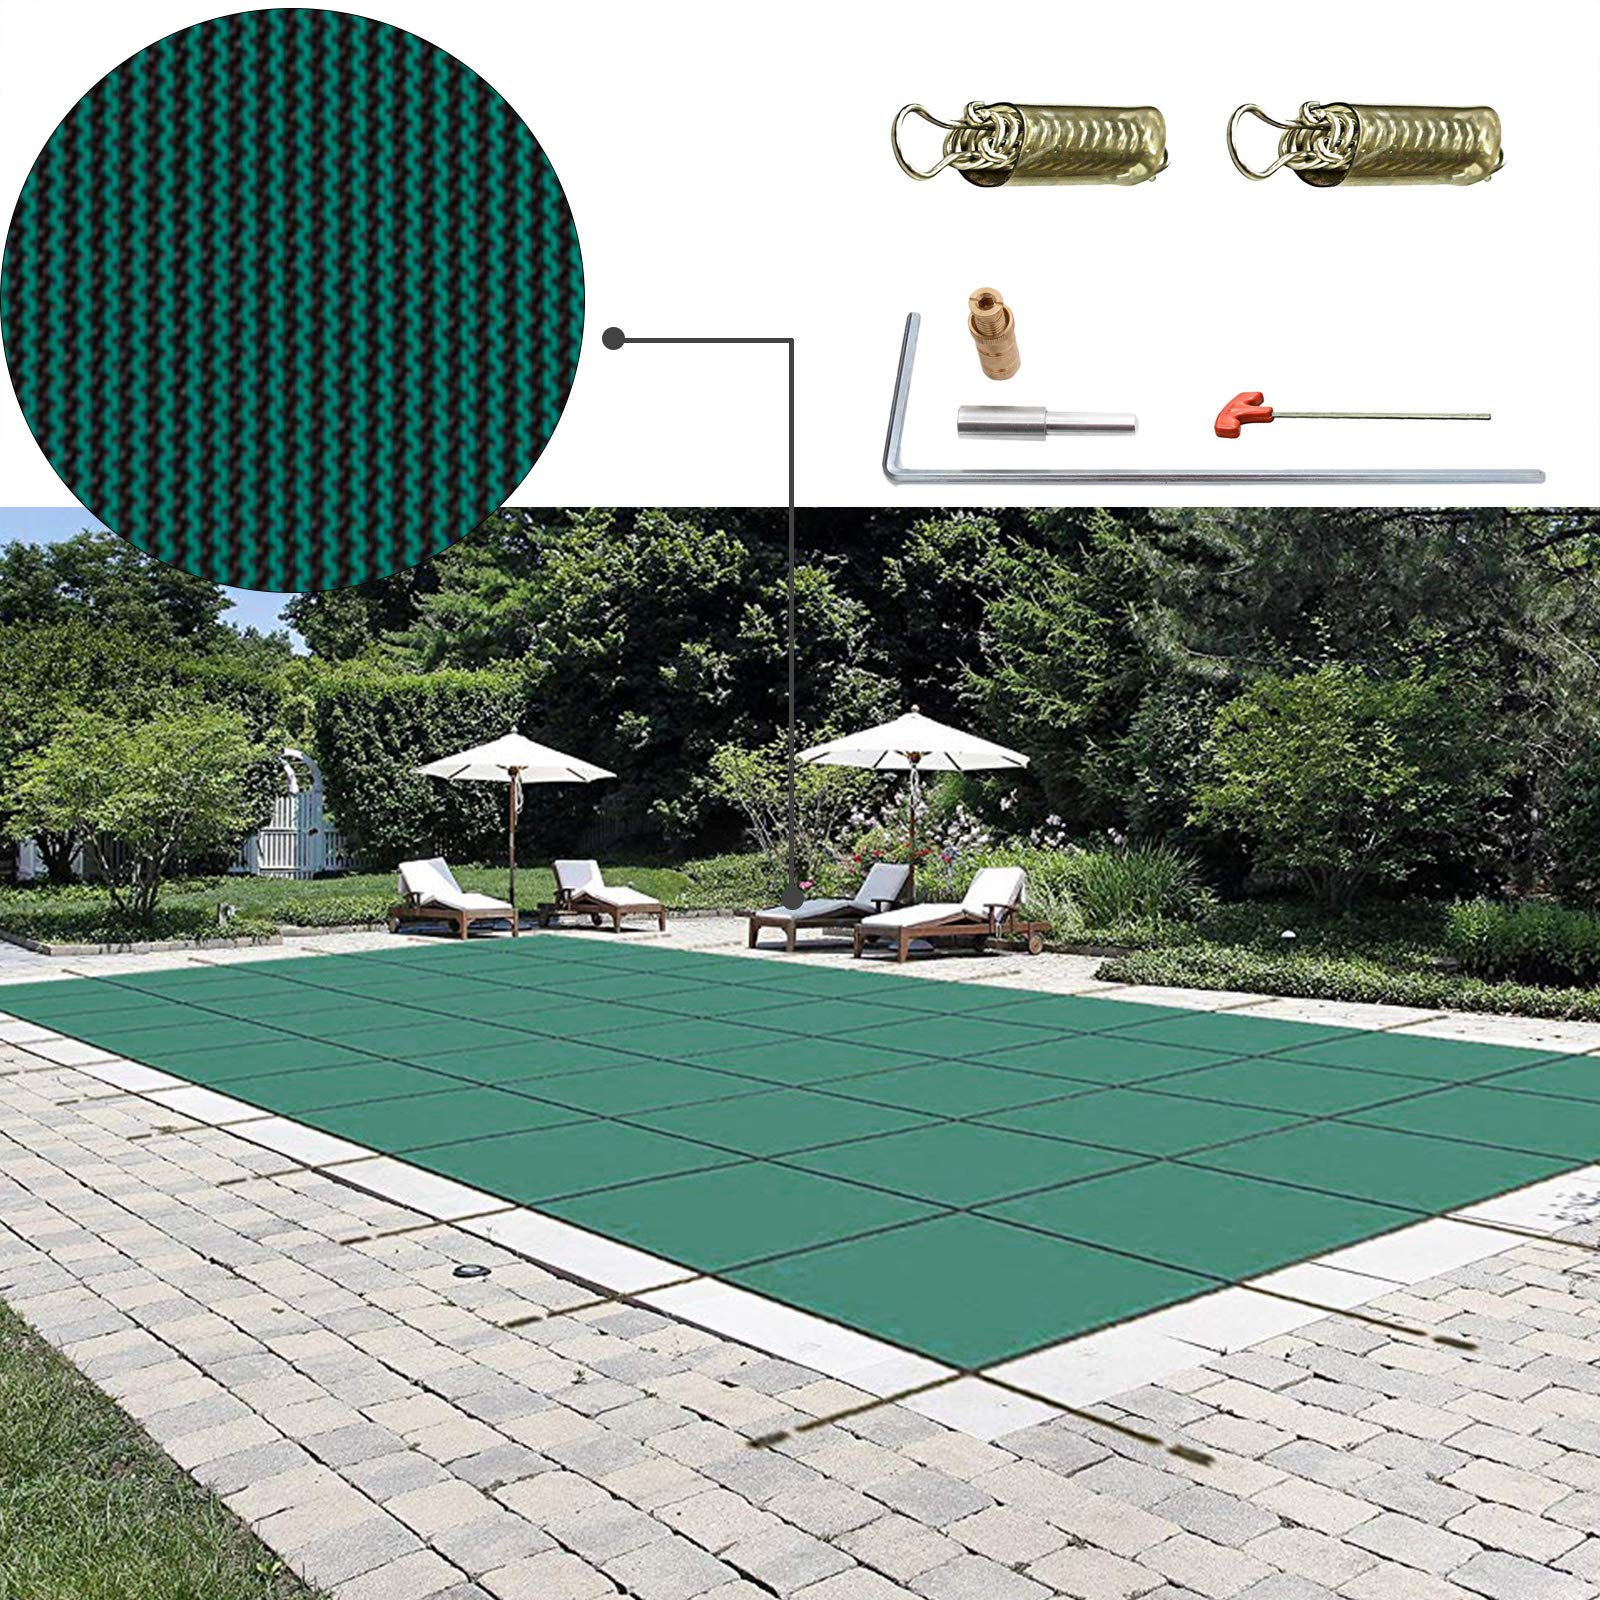 Best Rated in Pool Safety Covers & Helpful Customer Reviews ... on